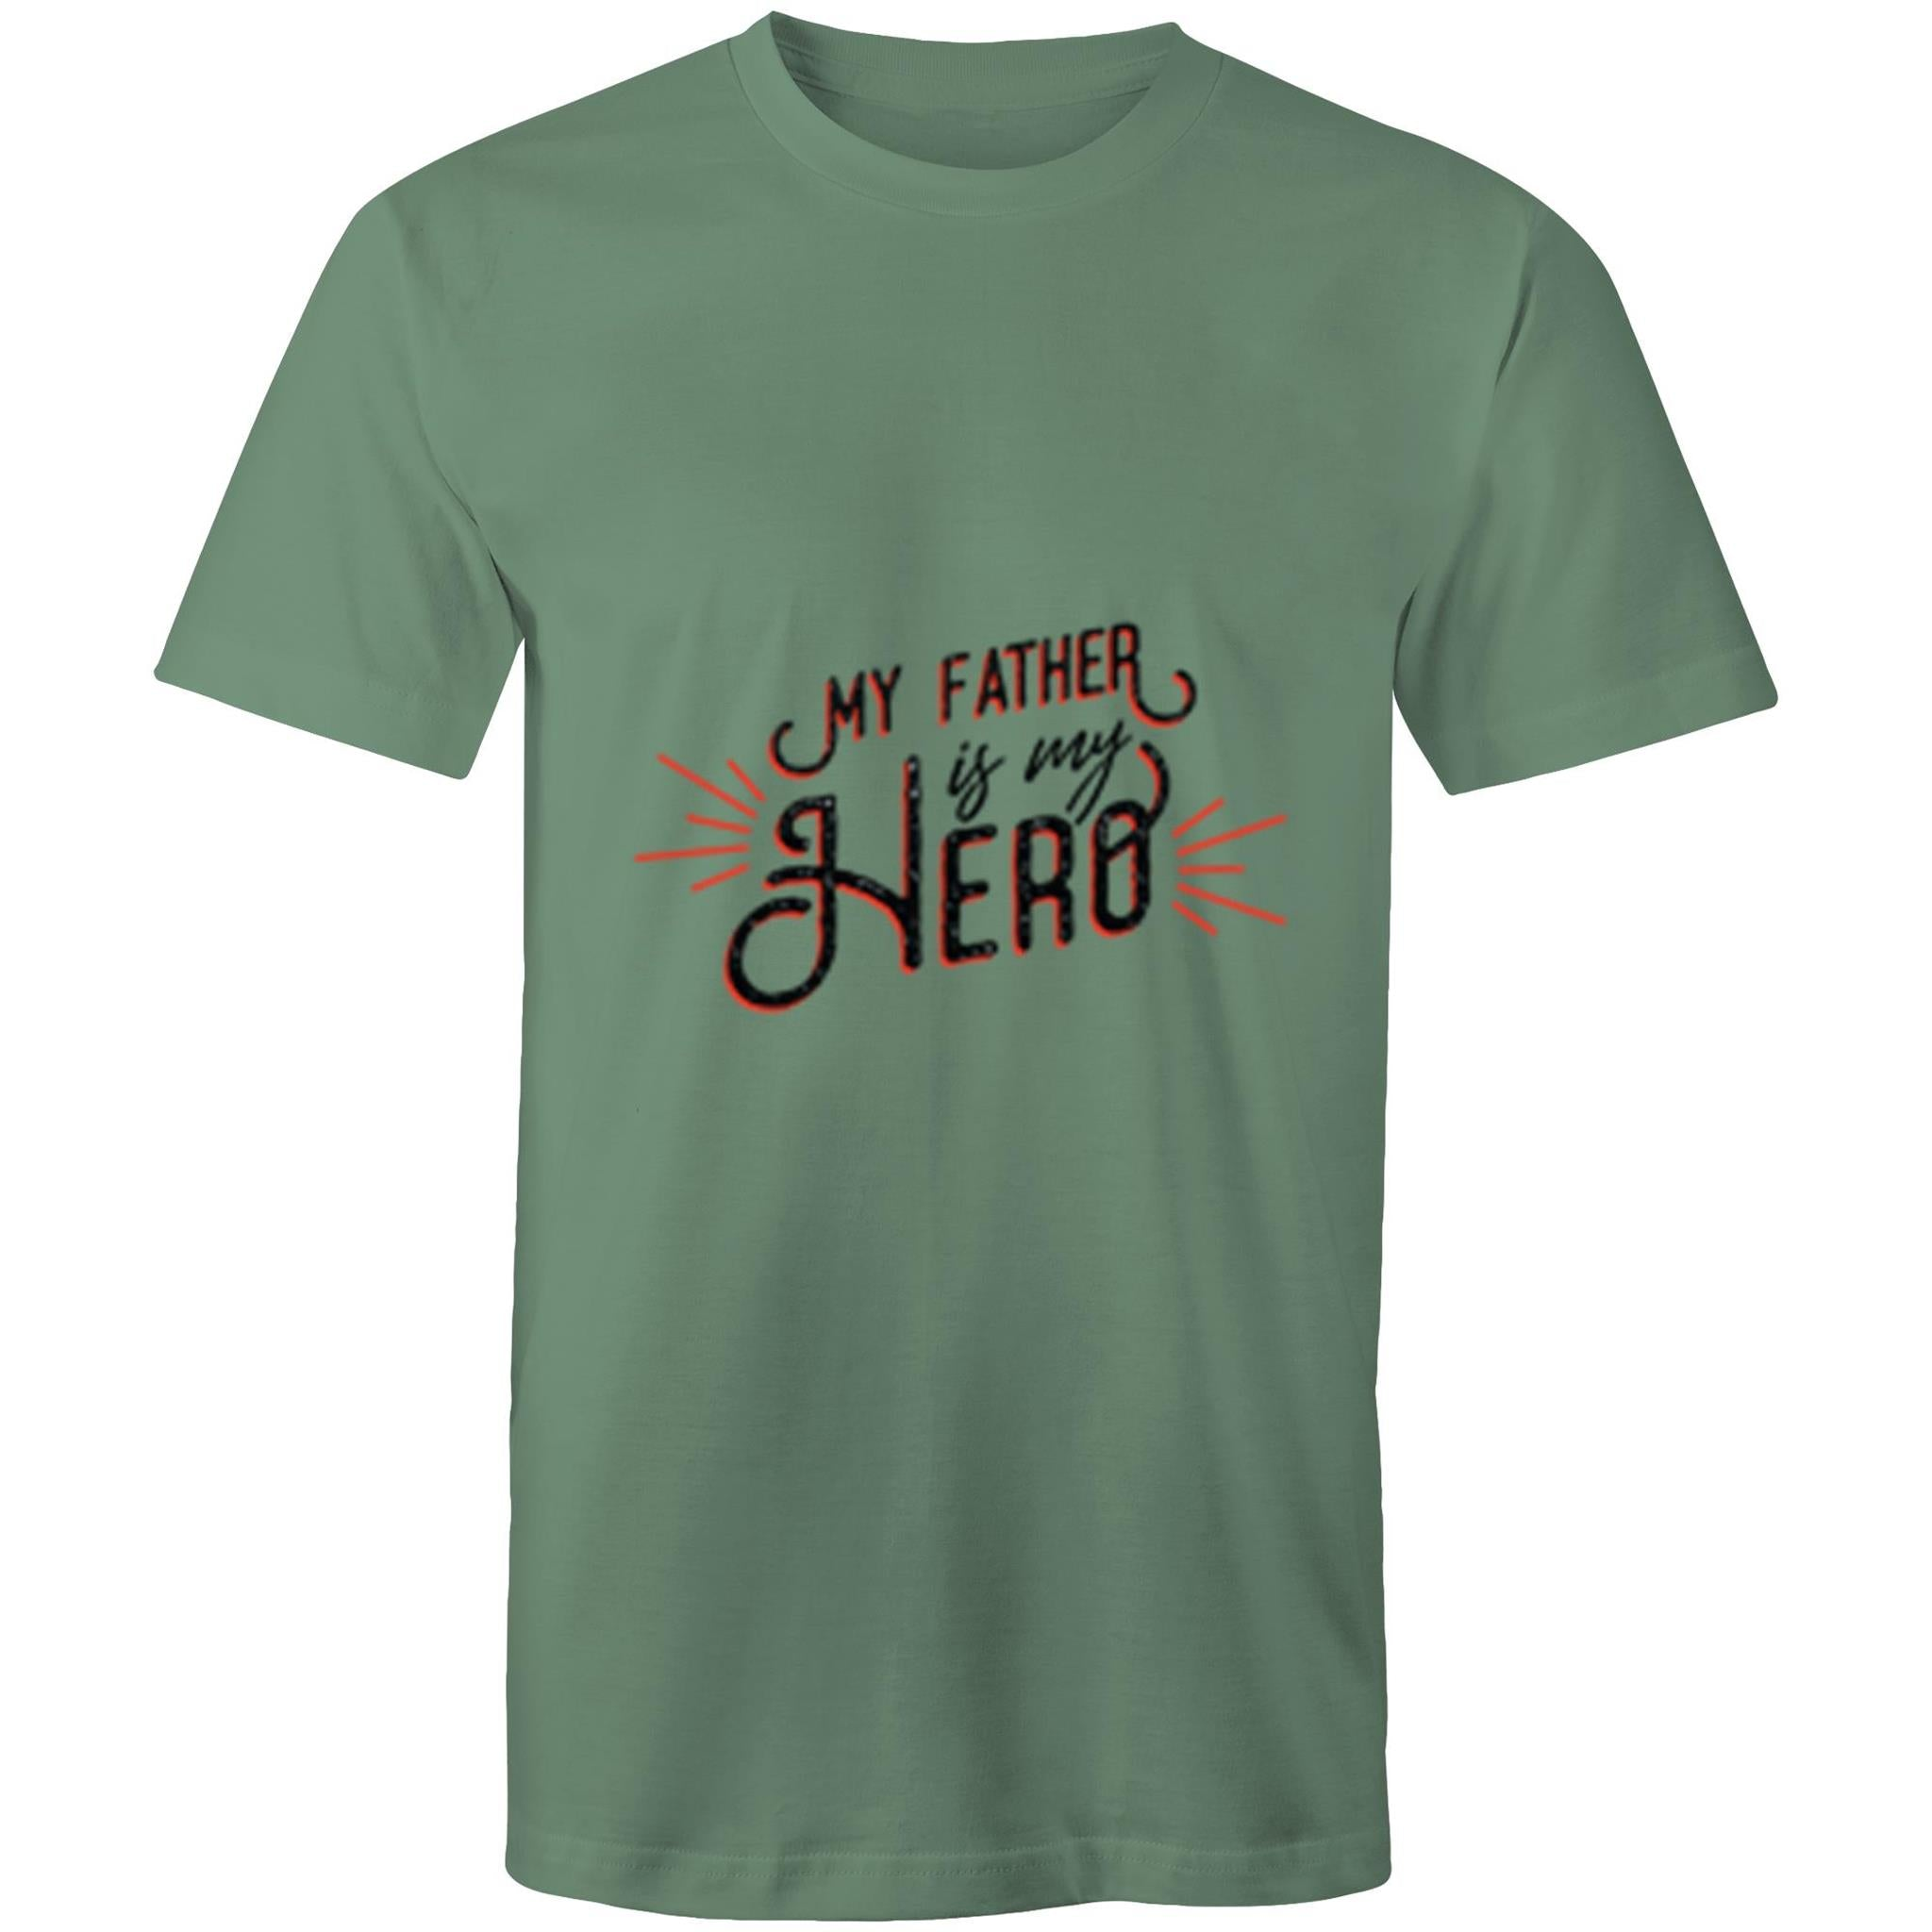 My father is my hero (Mens S - 5XL)